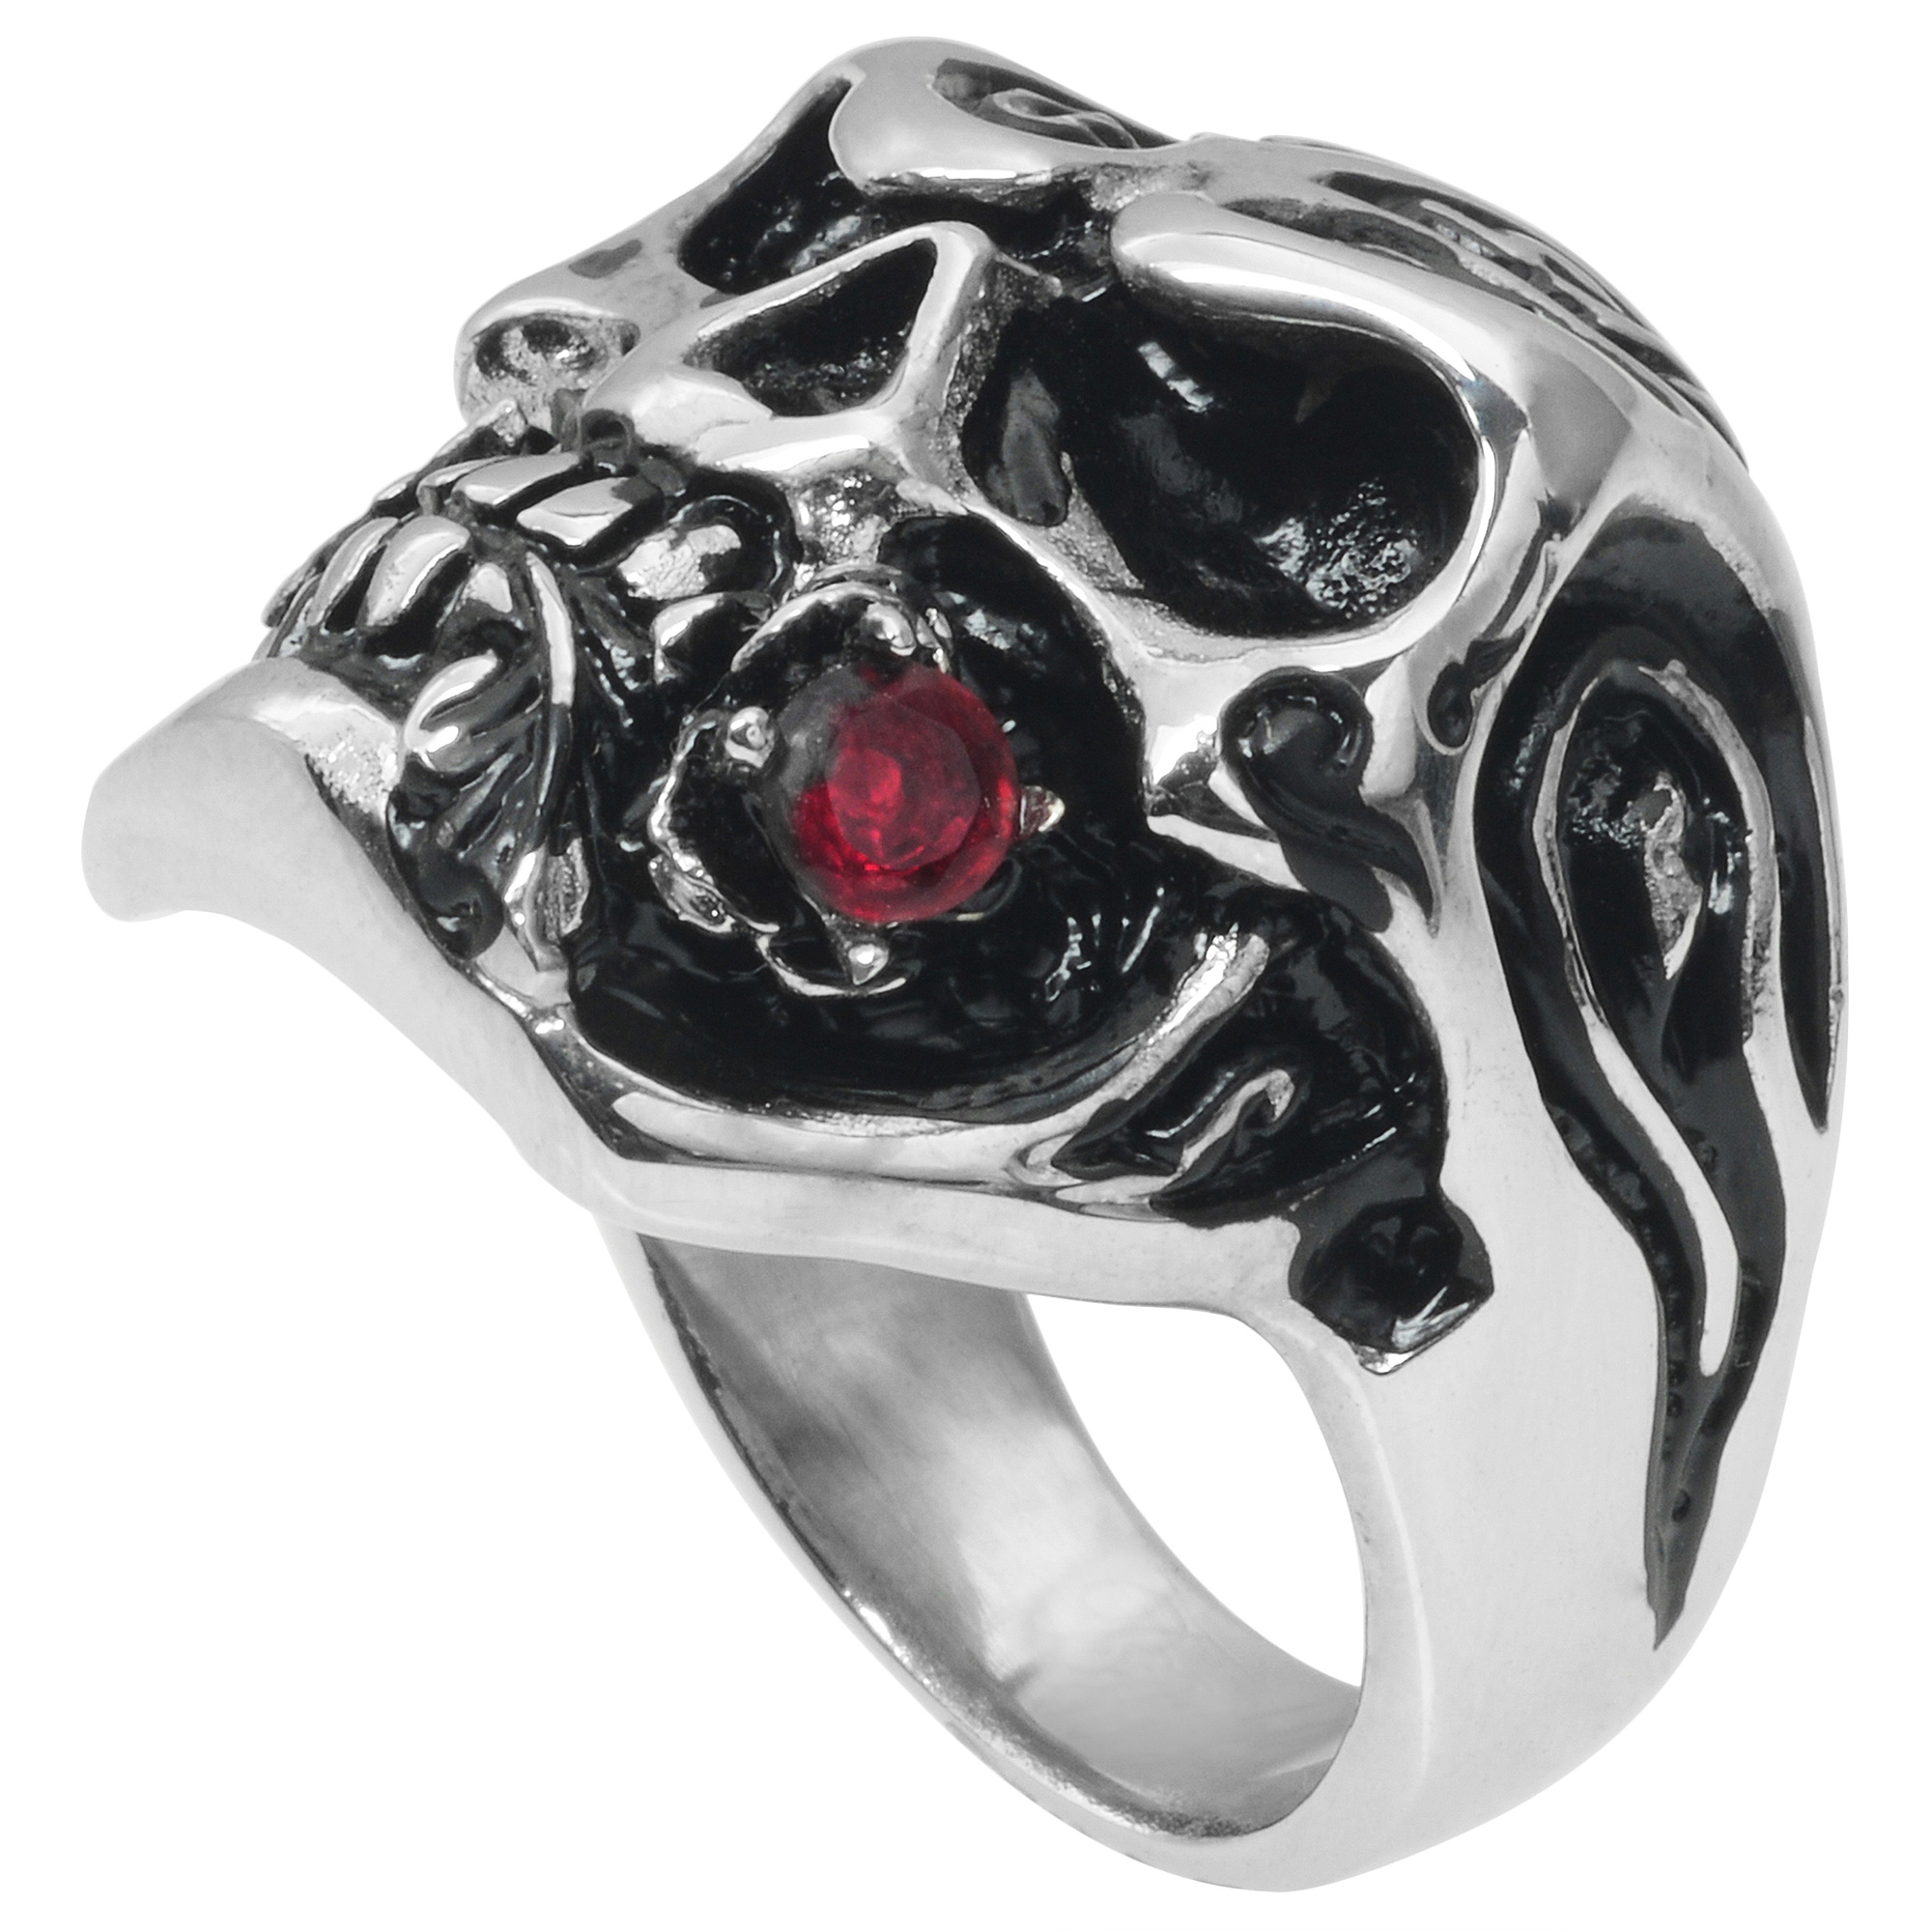 Daxx Men's Stainless Steel Cubic Zirconia Skull Ring